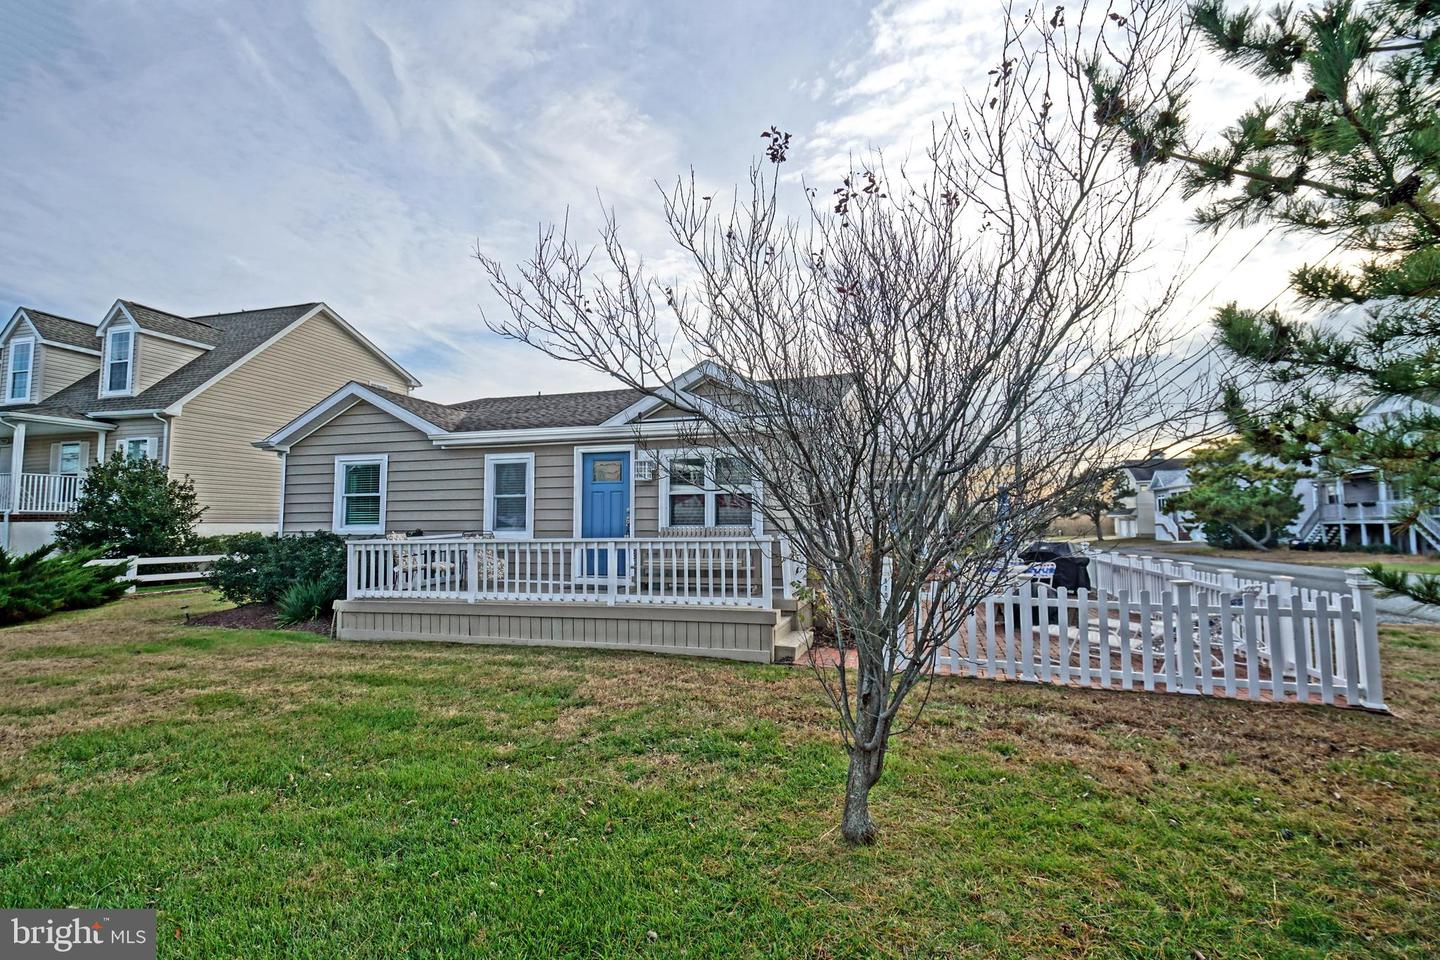 DESU150754-302164449442-2020-03-09-15-33-50 1701 Cedar St | Lewes, DE Real Estate For Sale | MLS# Desu150754  - Lee Ann Group